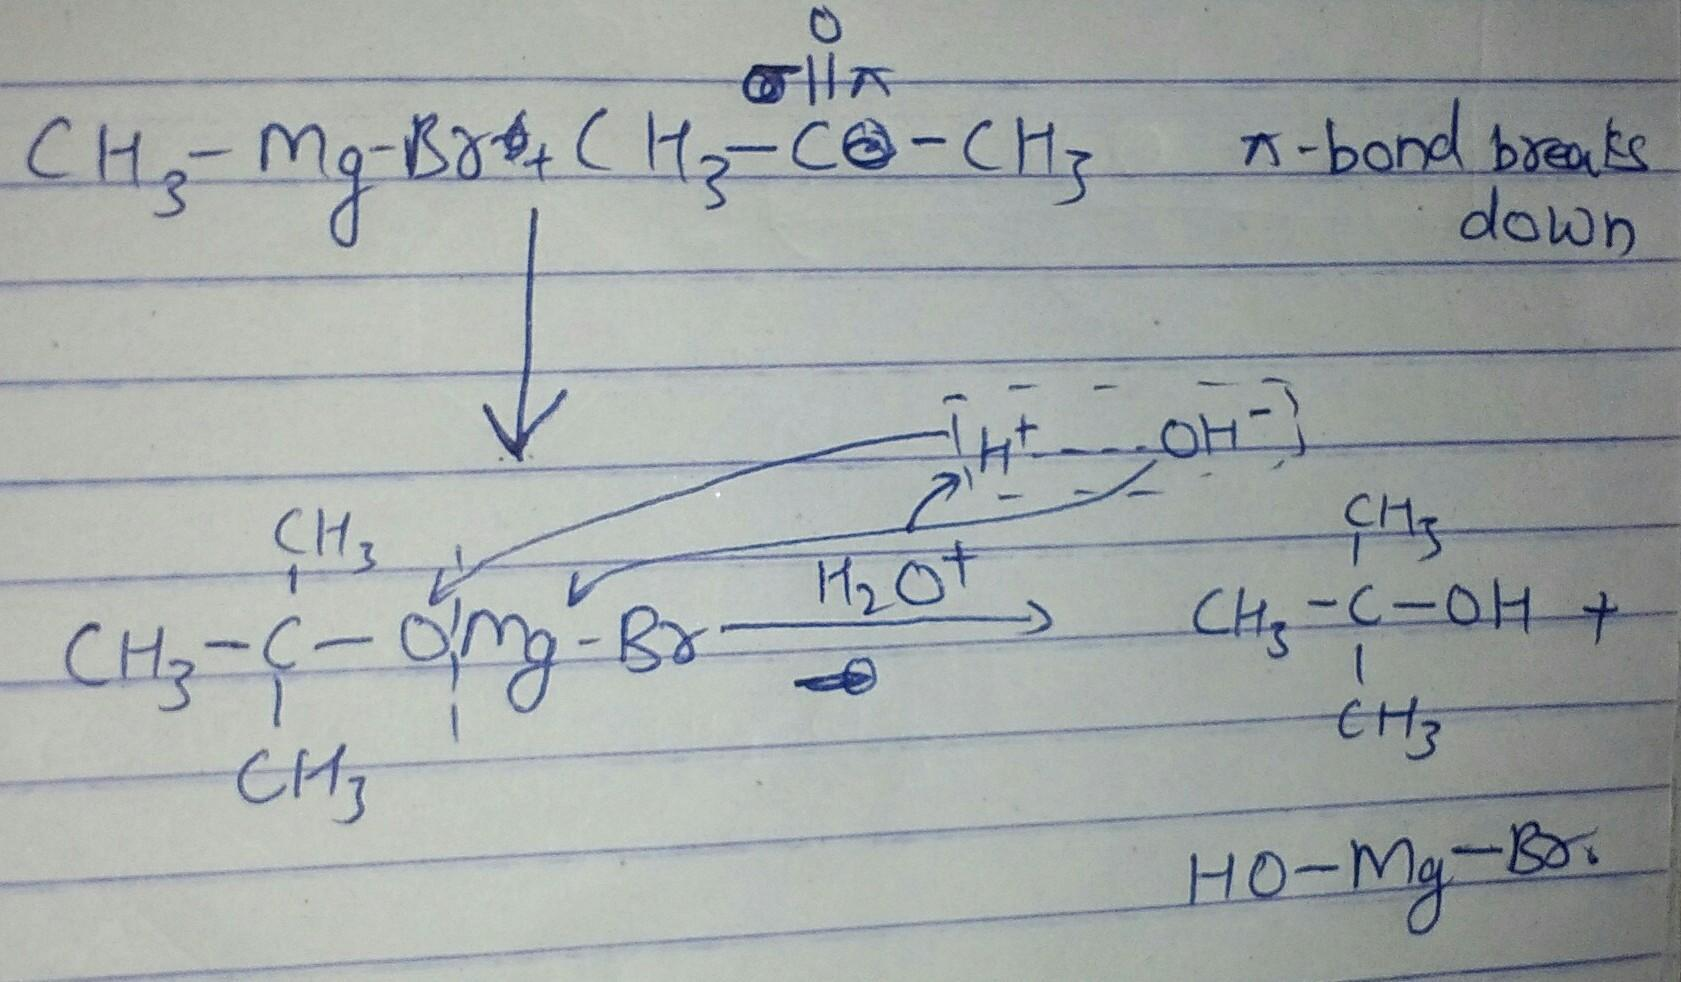 reaction of propanone with methylmagnesium bromide    and